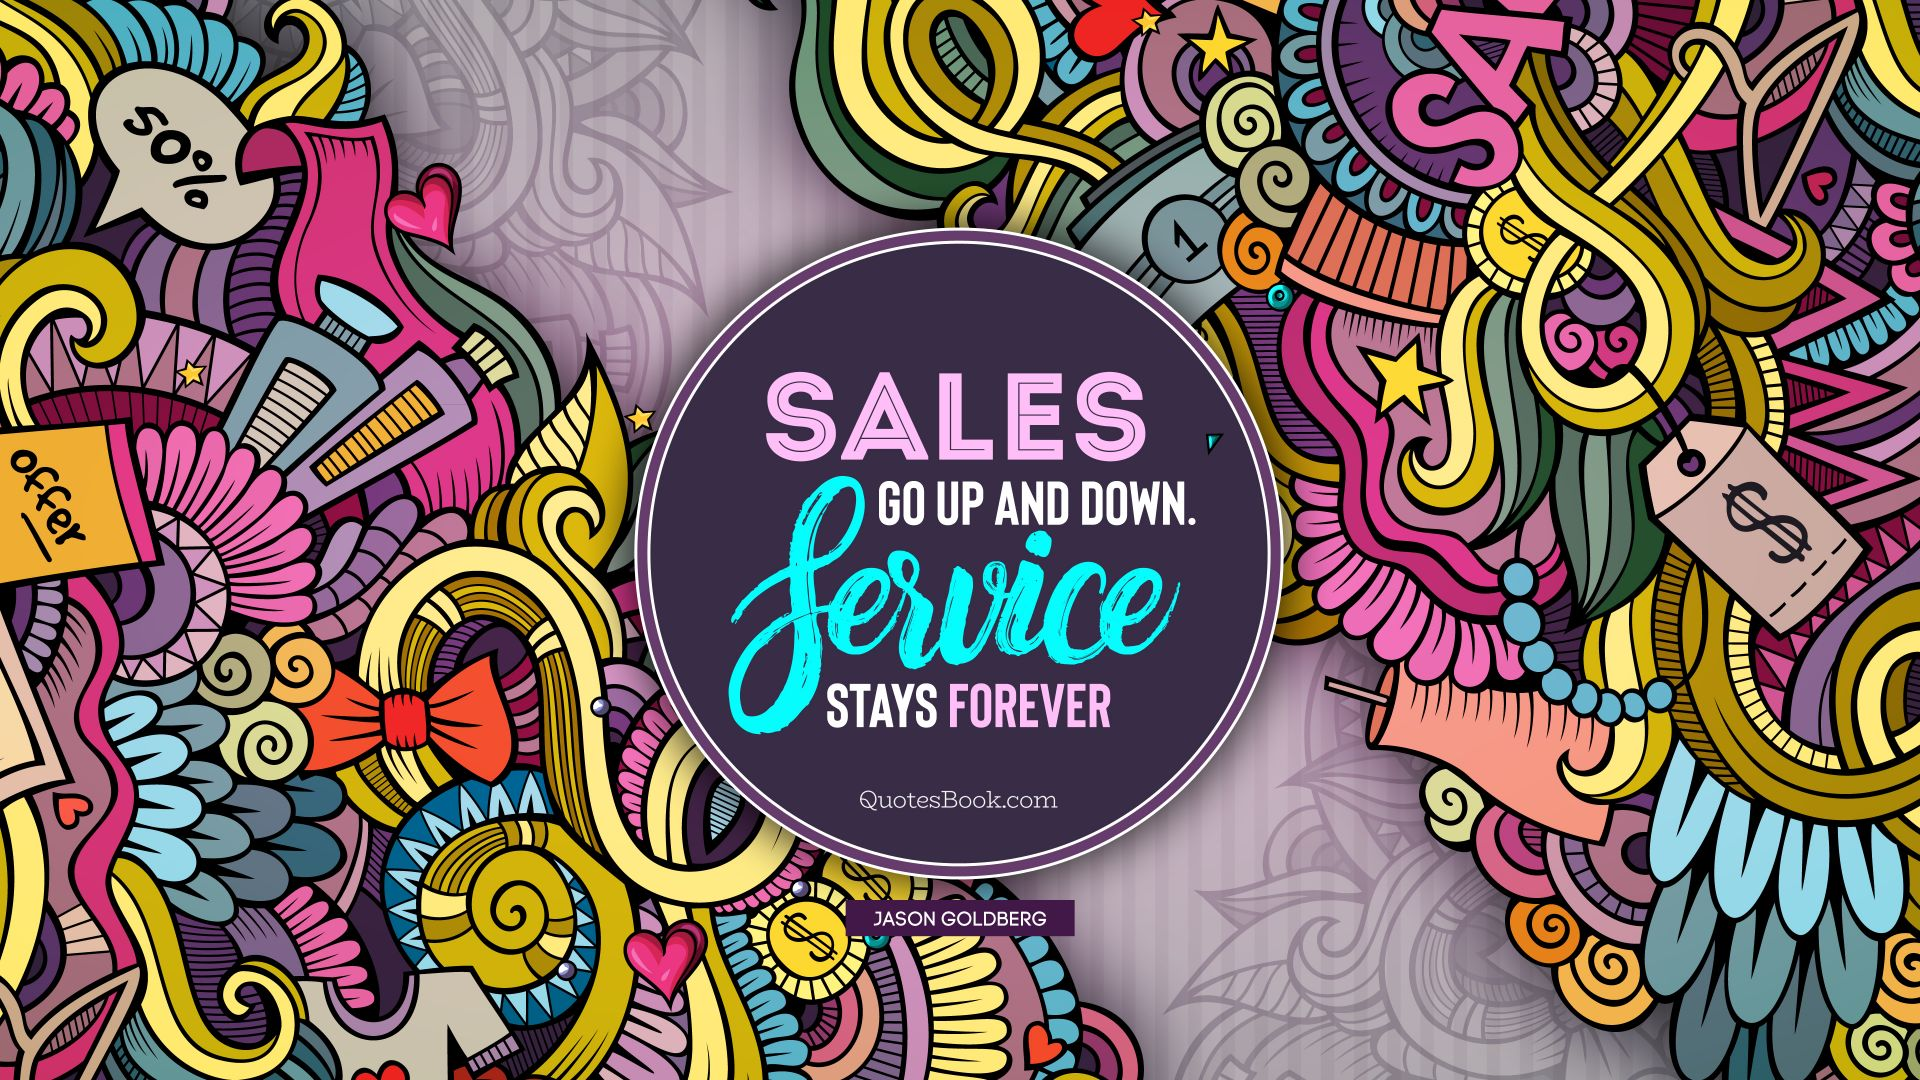 Sales go up and down. Service stays forever. - Quote by Jason Goldberg